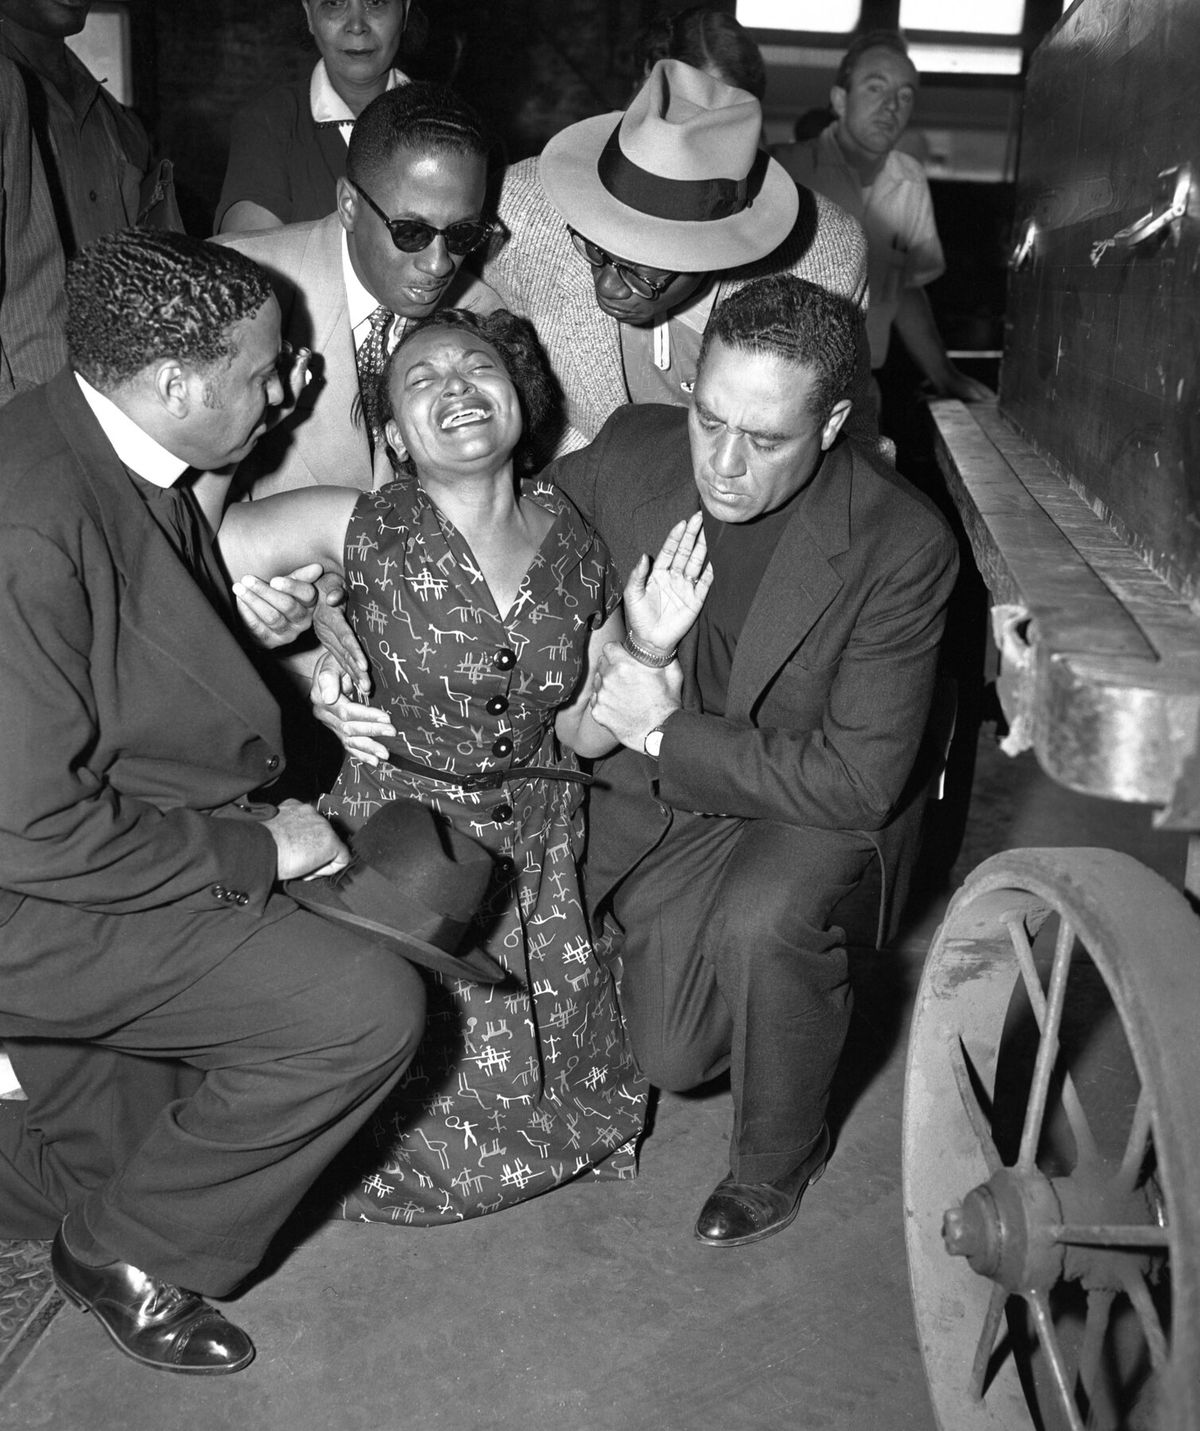 Mamie Till Mobley collapses as her son Emmett Till's body arrives at Chicago's old Illinois Central Railroad station after his murder by racists in Mississippi. On her left, with the white collar, is Alva Doris Roberts' husband, Bishop Isaiah L. Roberts, who presided over the funeral. On the right, also dressed in clerical black, is Bishop Louis Henry Ford, who gave the eulogy for the slain teenager.